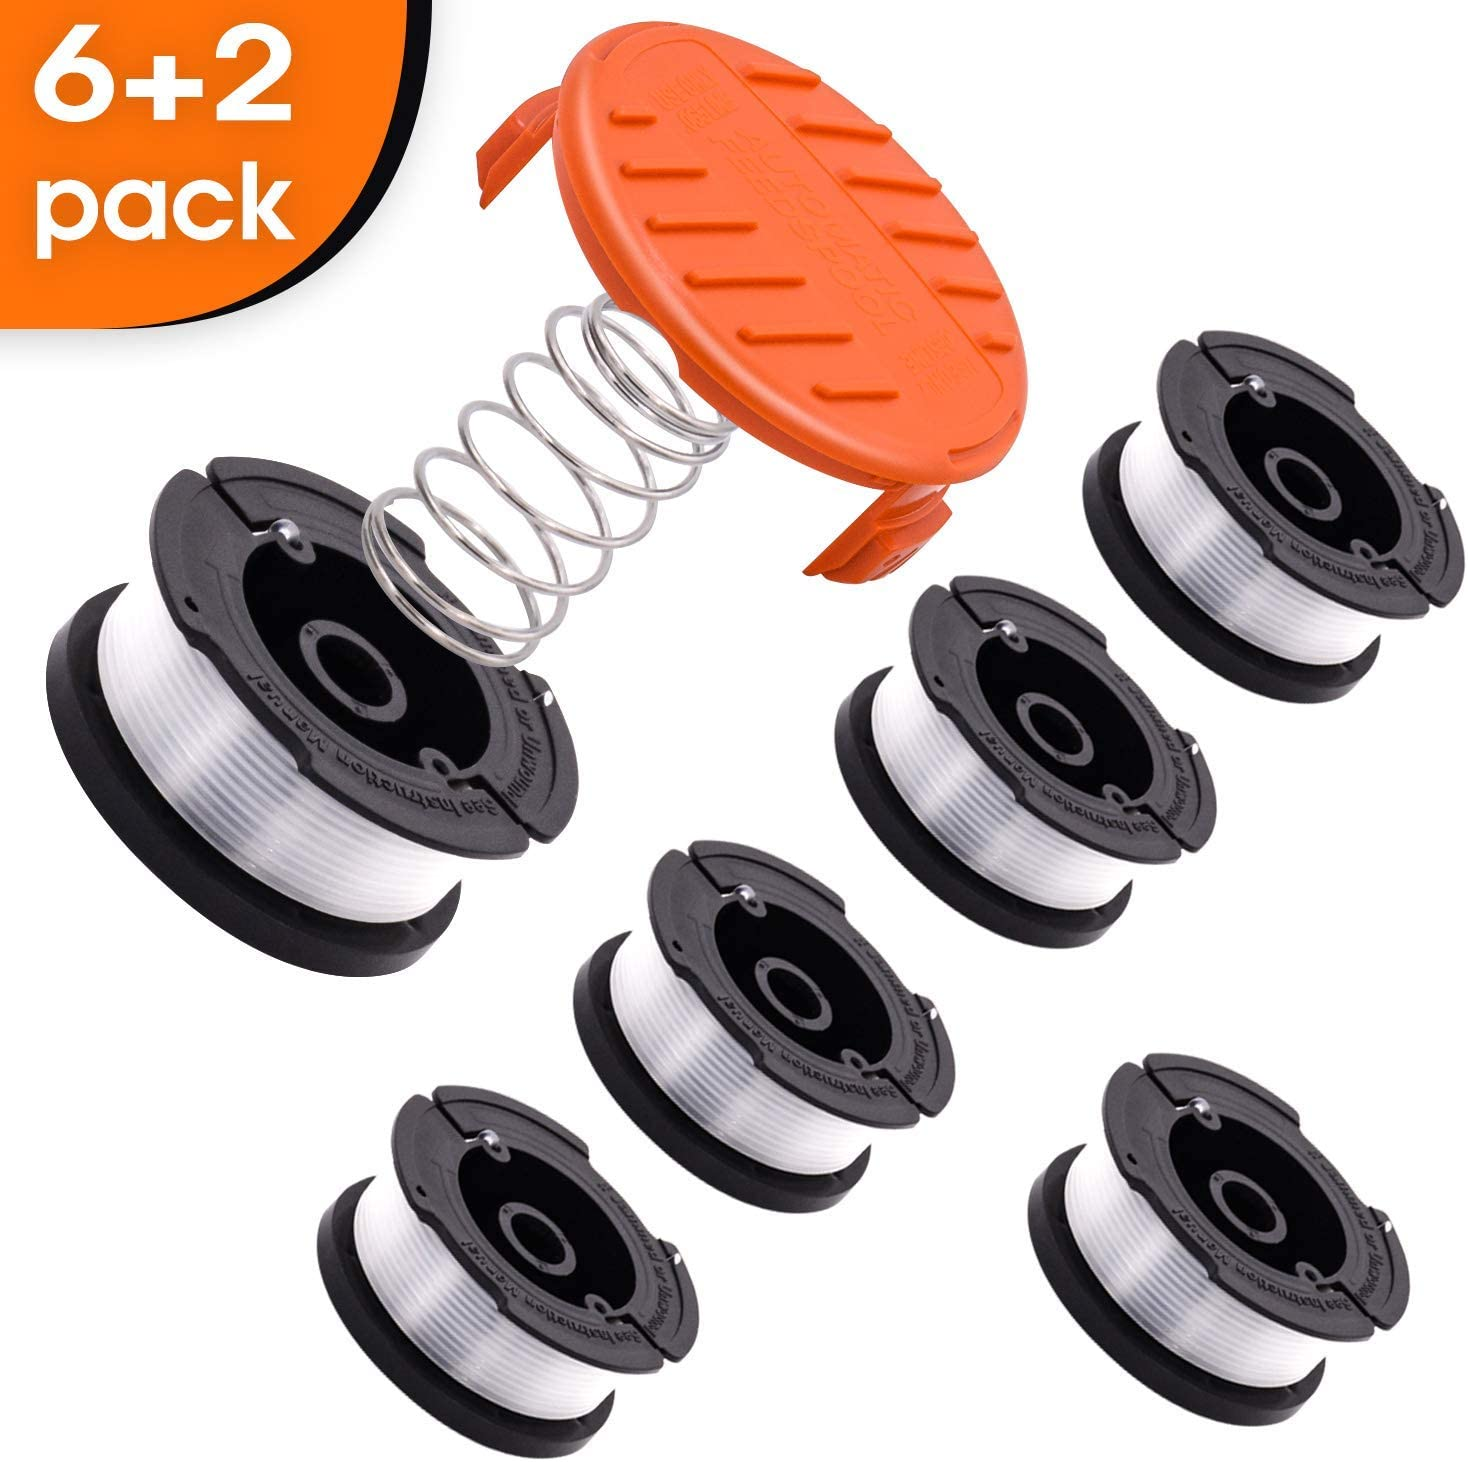 SOKOO Weed Eater Wacker String 065 Trimmer line Spool,30ft Autofeed Black and Decker AF-100 String Spool Wacker String Trimmer 8Pack(6 Spool,1Trimmer Cap,1Spring) besta510 Home Weed Eater Spool